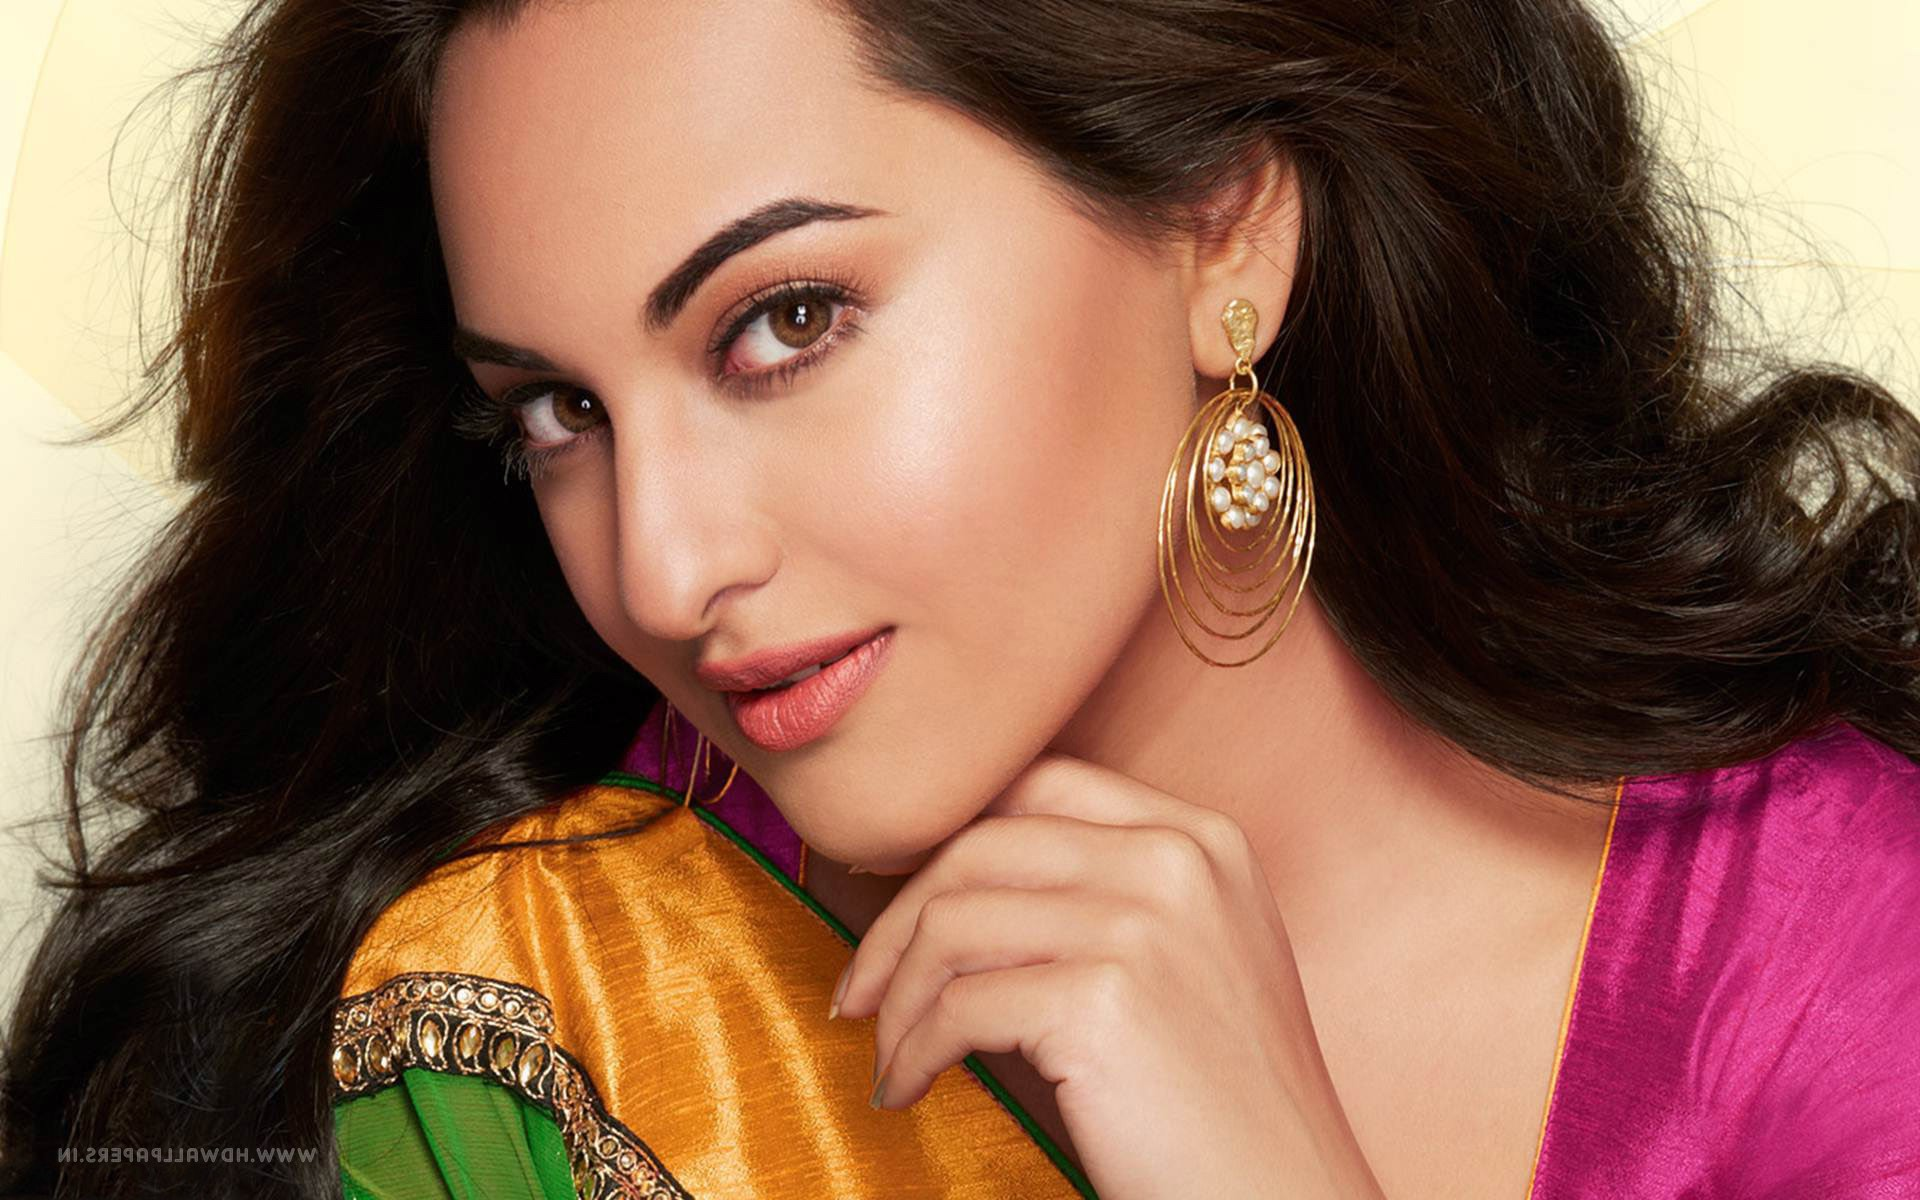 1280x720 sonakshi sinha 7 720p hd 4k wallpapers, images, backgrounds